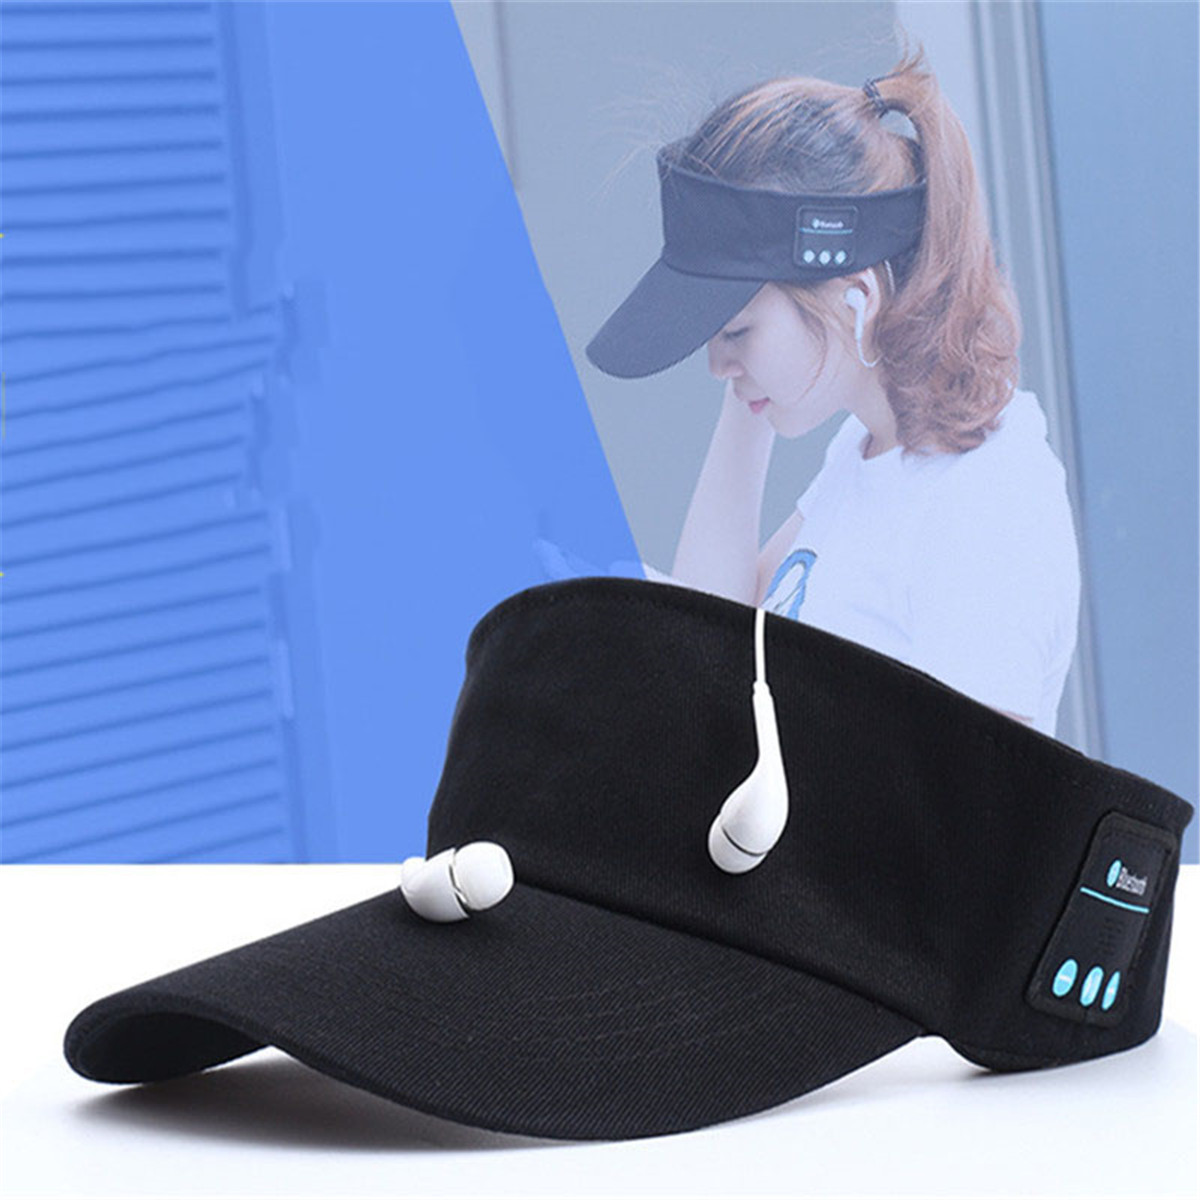 Wireless Sun Cap Bluetooth Earphones Baseball Sun Hat Music Headset Handsfree with Microphone for Most Phones Sports Adult Size bluetooth beanie hat and touchscreen gloves knitted bluetooth music hat built in stereo speakers winter hat for outdoor sports